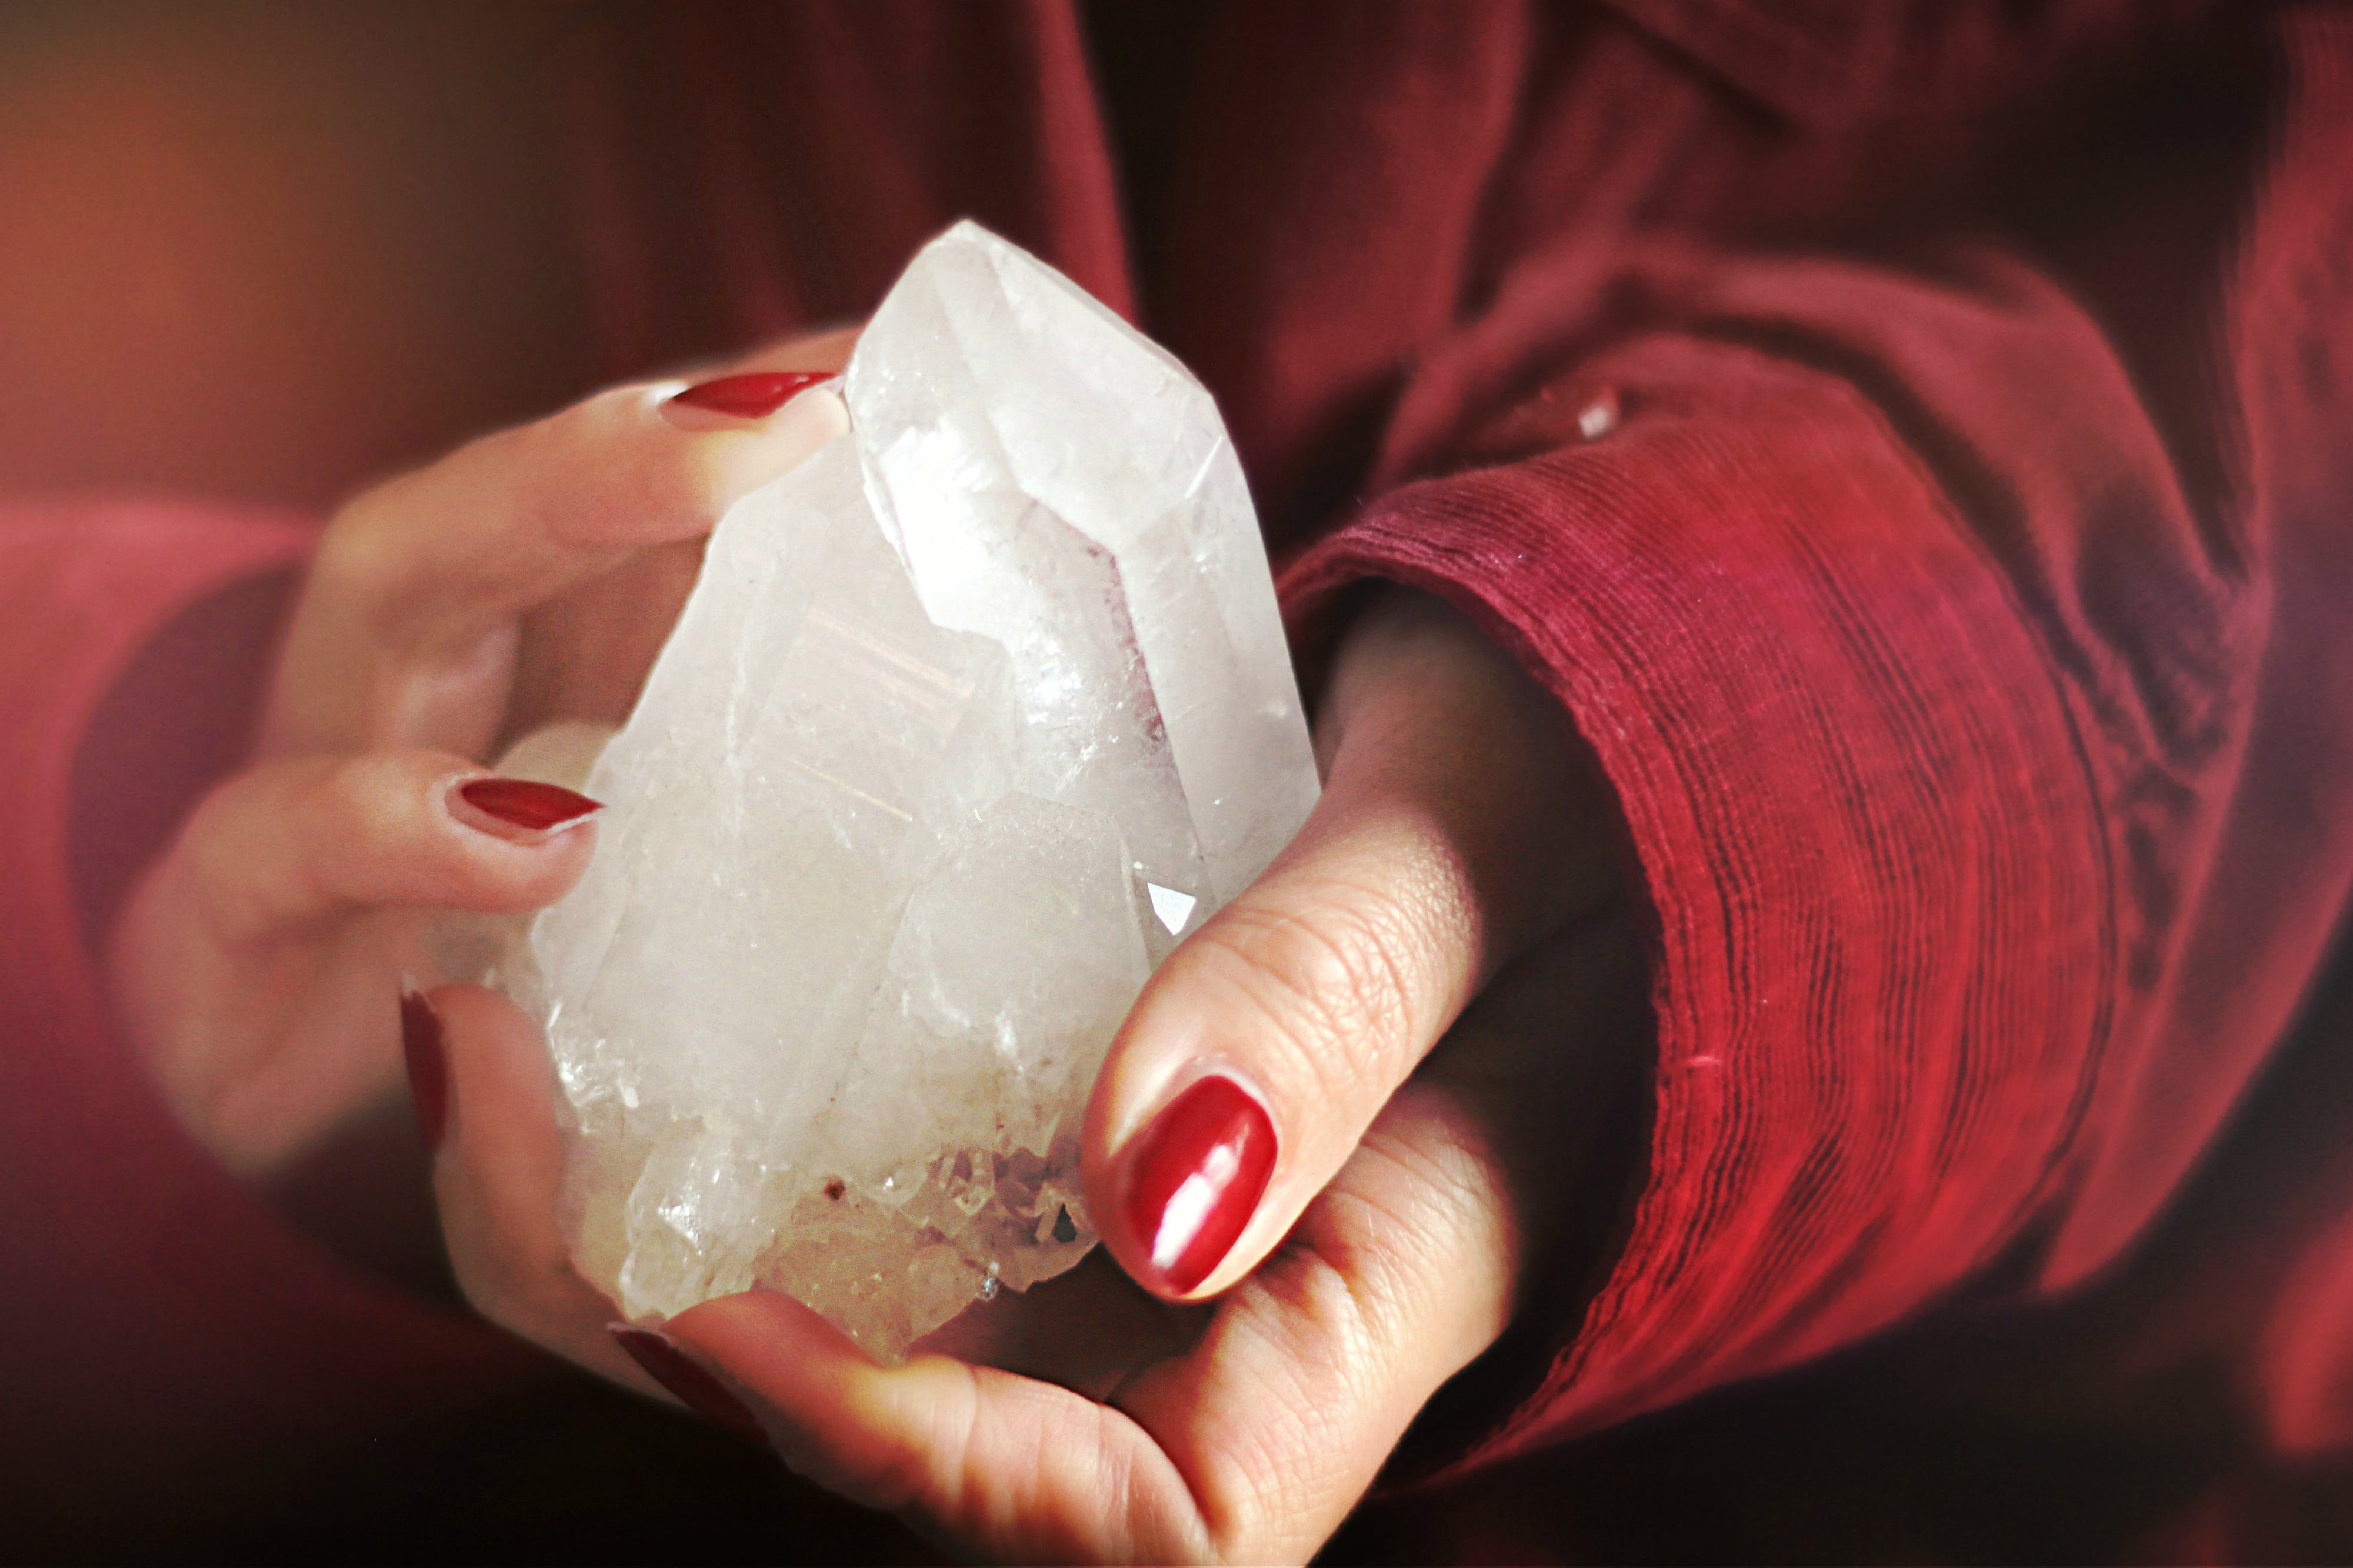 Close-Up Photo of Person Holding Crystal Stone